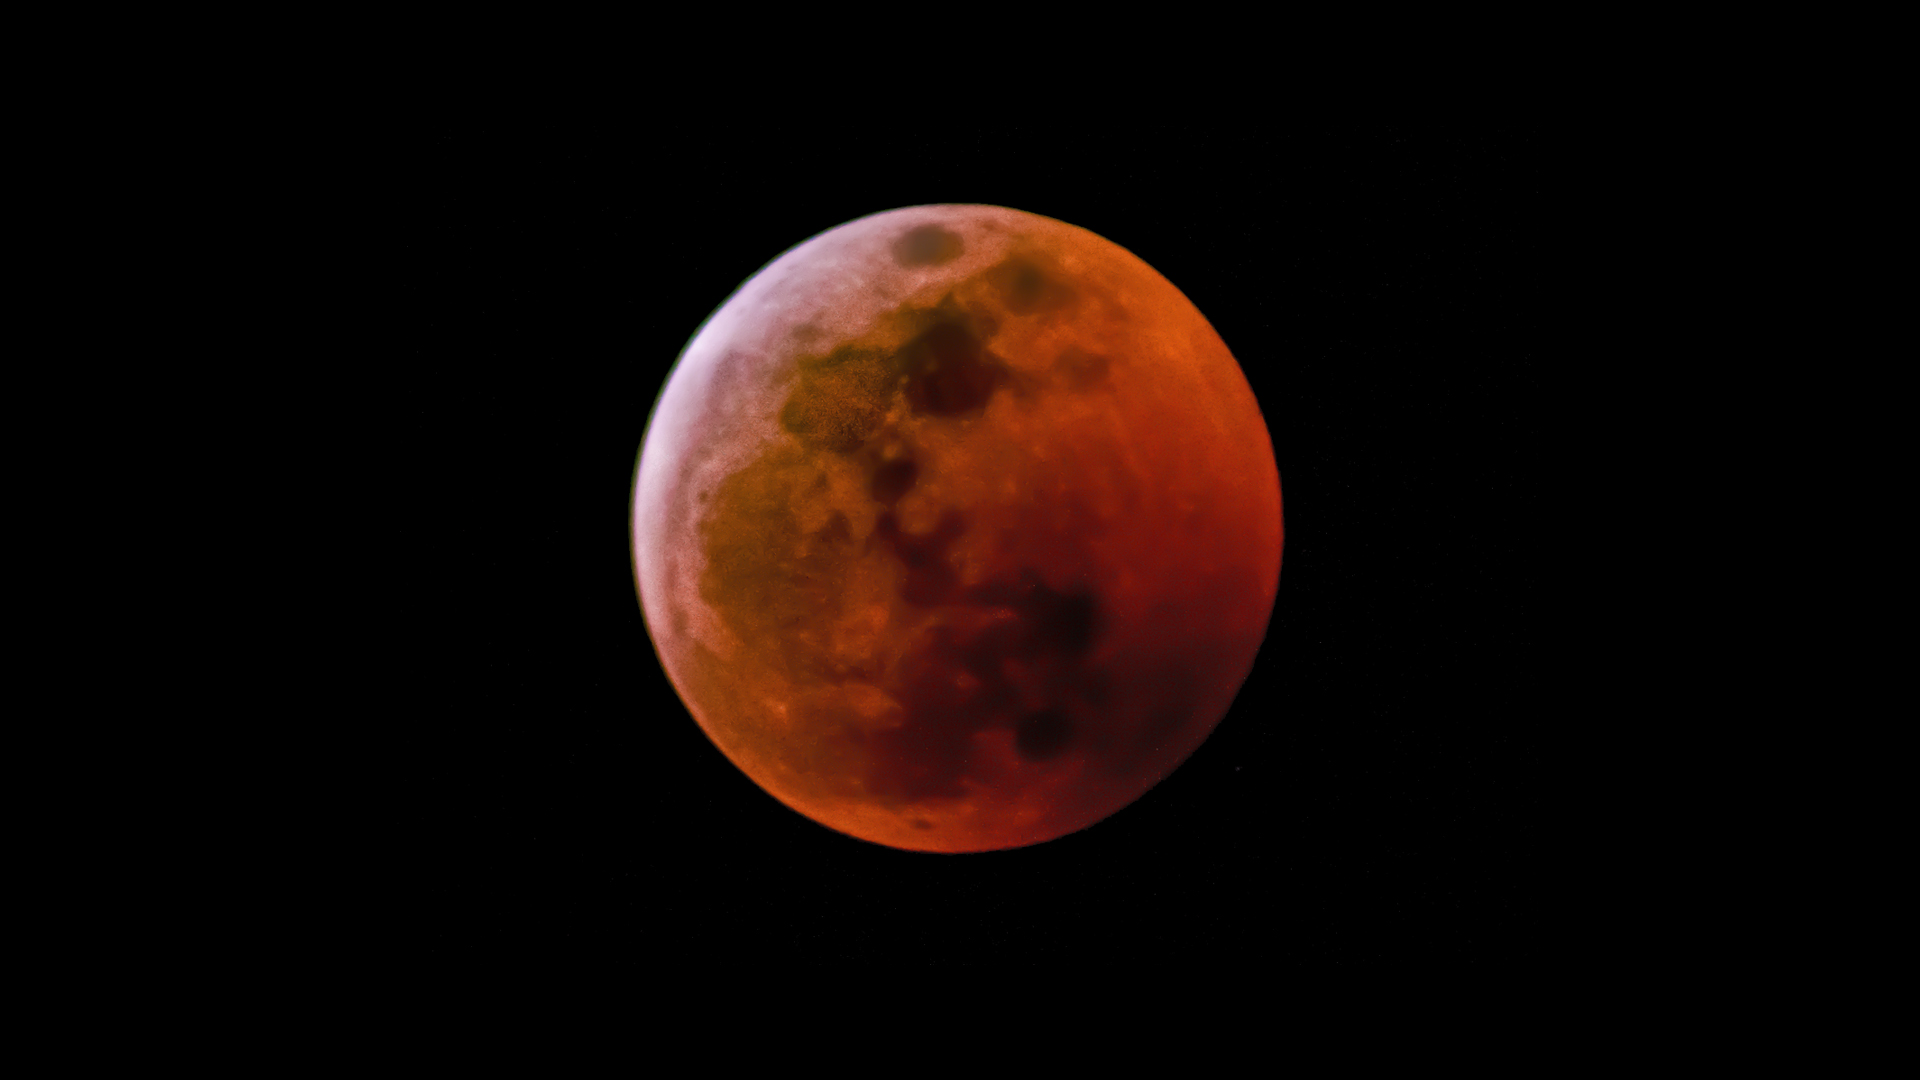 wolf blood moon january 2019 florida - photo #13